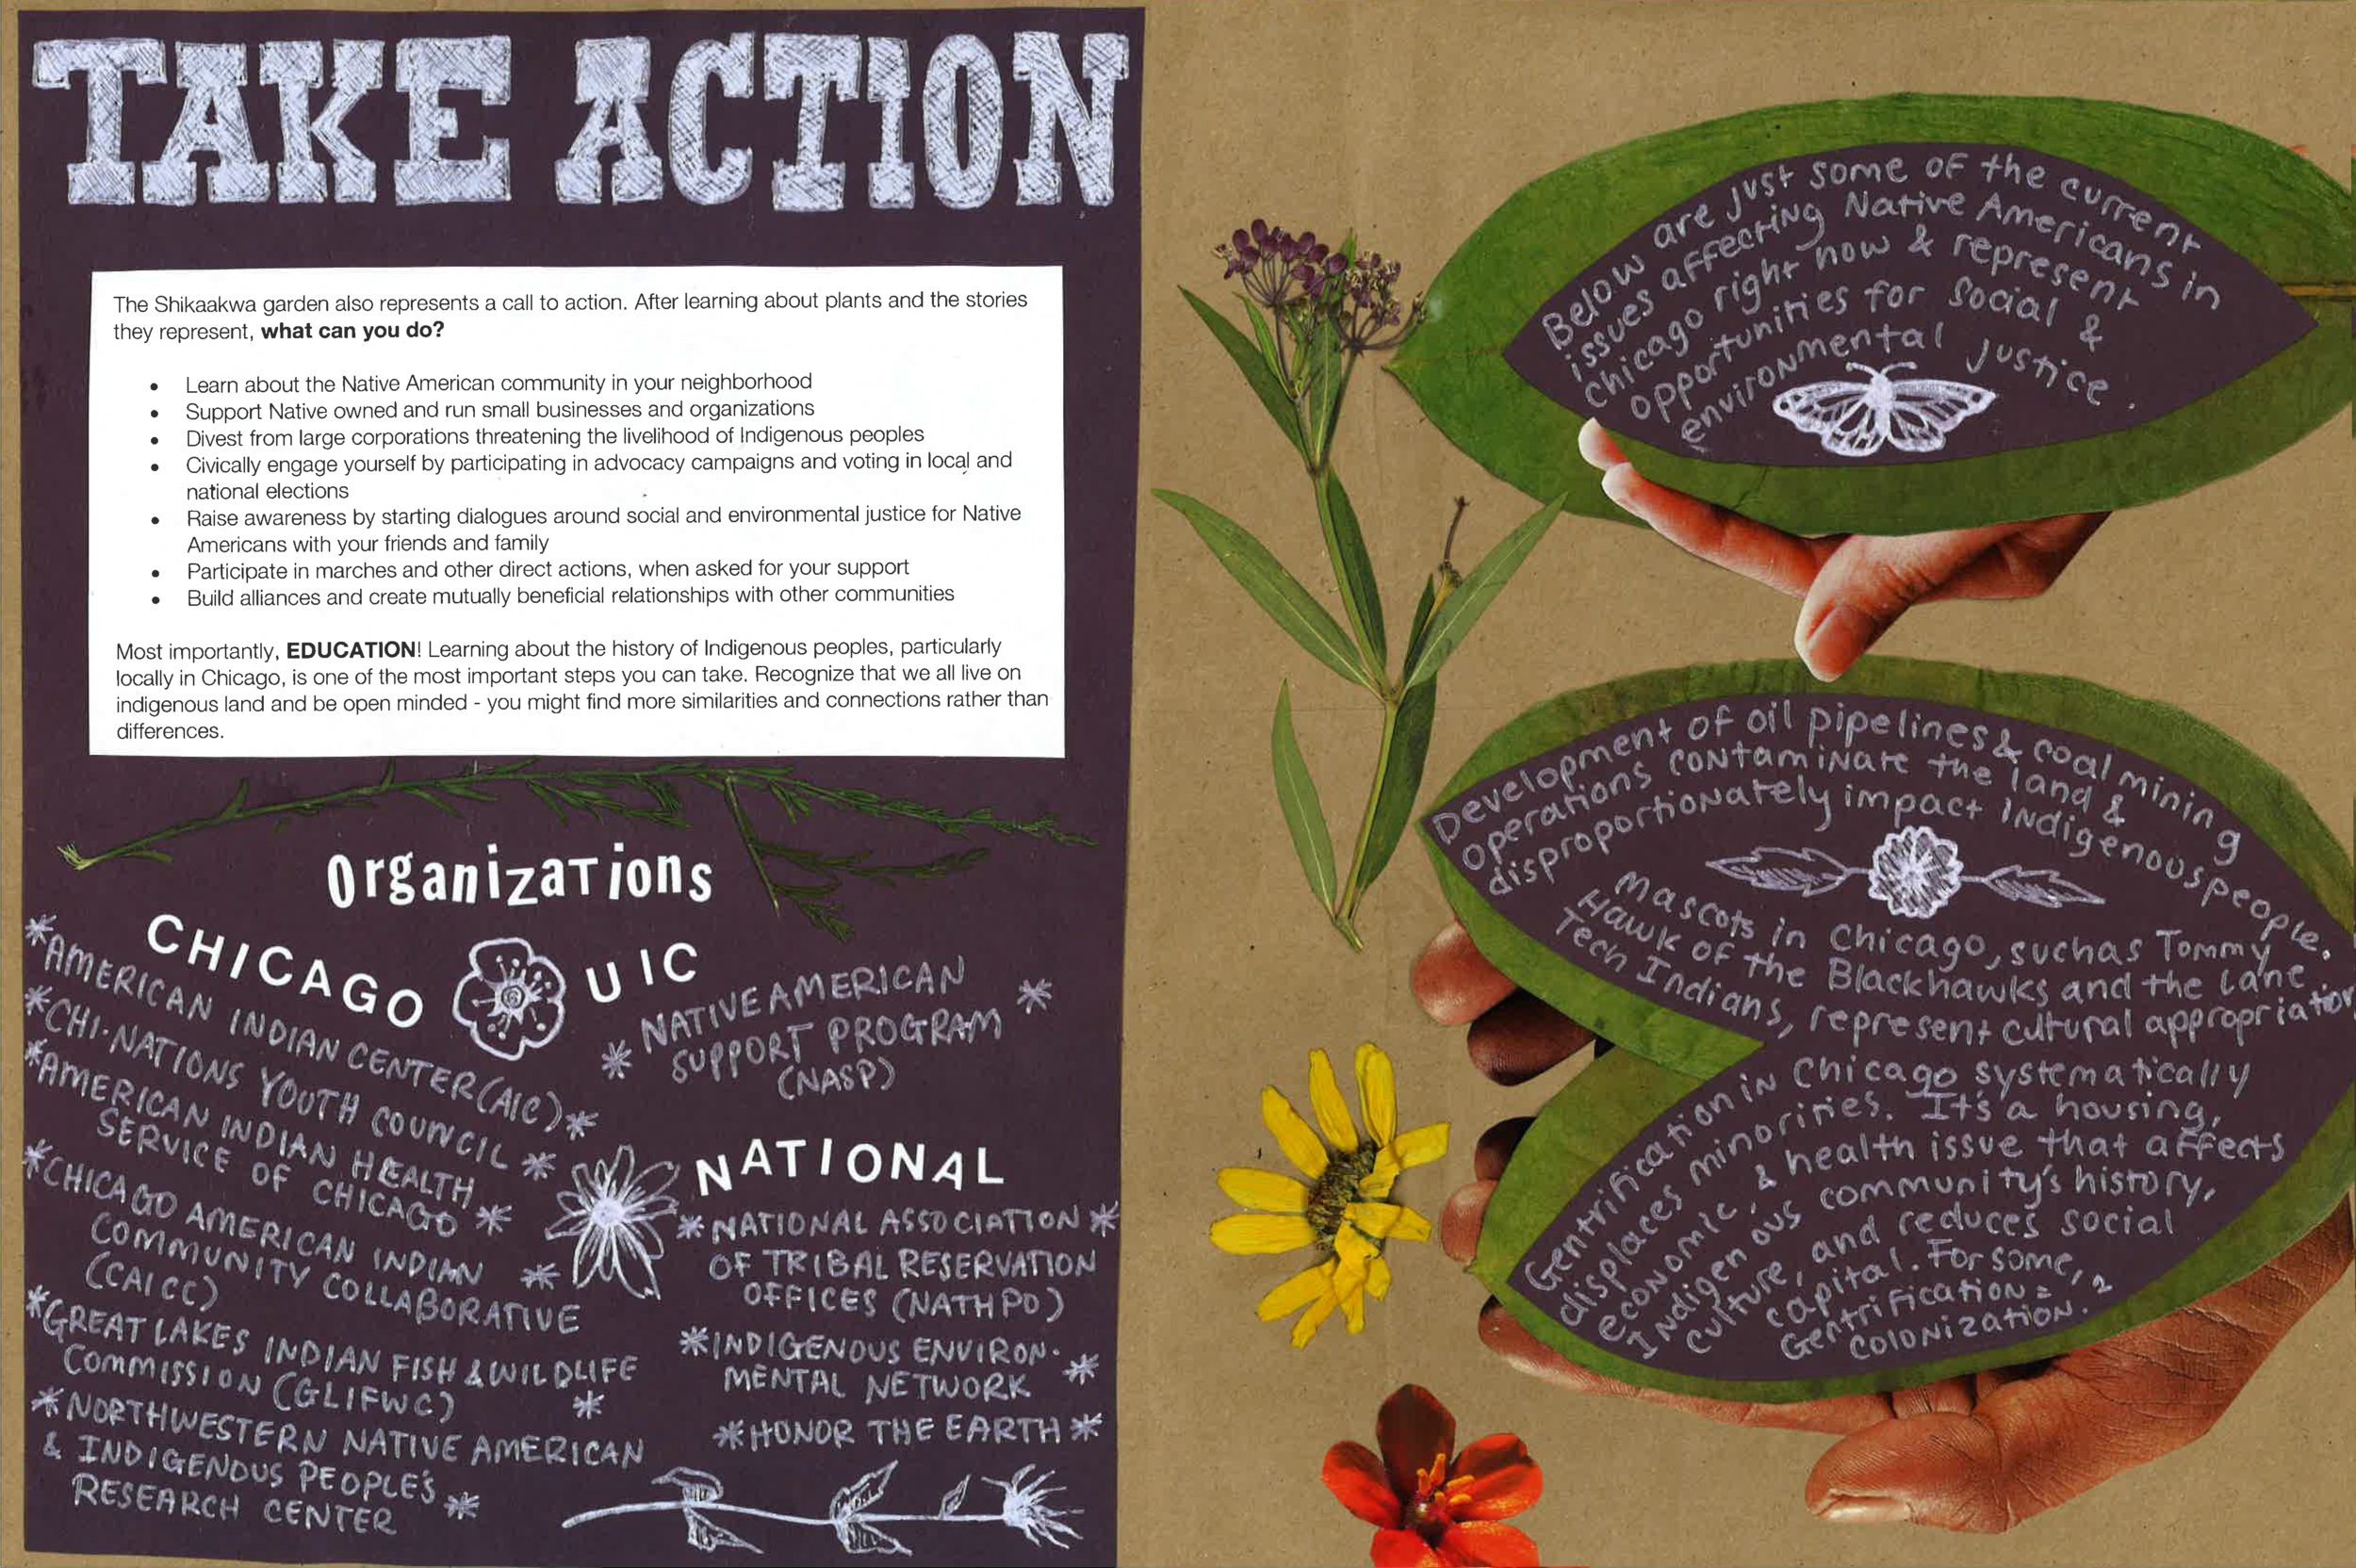 TAKE ACTION!   The Shikaakwa garden also represents a call to action. After learning about plants and the stories they represent,   what can you do?    -Learn about the Native American community in your neighborhood  -Support Native owned and run small businesses and organizations  -Divest from large corporations threatening the livelihood of Indigenous people  -Civically engage yourself by participating in advocacy campaigns and voting in local and national elections  -Raise awareness by engaging your friends and family and start dialogues around social and environmental justice for Native Americans  -Participate in marches and other direct actions, when asked for your support  -Build alliances and create mutually beneficial relationships with other communities  Most importantly,   EDUCATION !  Learning about the history of Indigenous people, particularly locally in Chicago, is one of the most important steps you can take. Recognizing that we all live on indigenous land and be open minded - you might find more similarities and connections rather than differences.   Organizations    UIC    UIC Native American Support Program (NASP)    Chicago    American Indian Center    Chi-Nations Youth Council    American Indian Health Service of Chicago    Chicago American Indian Community Collaborative (CAICC)    Great Lakes Indian Fish and Wildlife Commission (GLIFWC)    Northwestern Native American and Indigenous People's Research Center    National    National Association of Tribal Preservation Offices (NATHPO)    Indigenous Environmental Network    Honor the Earth   Below are just some of the current issues affecting Native Americans in Chicago right now and represent opportunities for social and environmental justice.  Development of oil pipeline and coal mining operations contaminate the land and disproportionately impact indigenous people.  Mascots in Chicago, such as Tommy Hawk of the Blackhawks and the Lane Tech Indians, represent cultural appropriation .  Gentrification in Chicago systematically displaces minorities. It's a housing, economic, and health issue that affects Indigenous community's history, culture, and reduces social capital. For some, gentrification = Colonization (1).